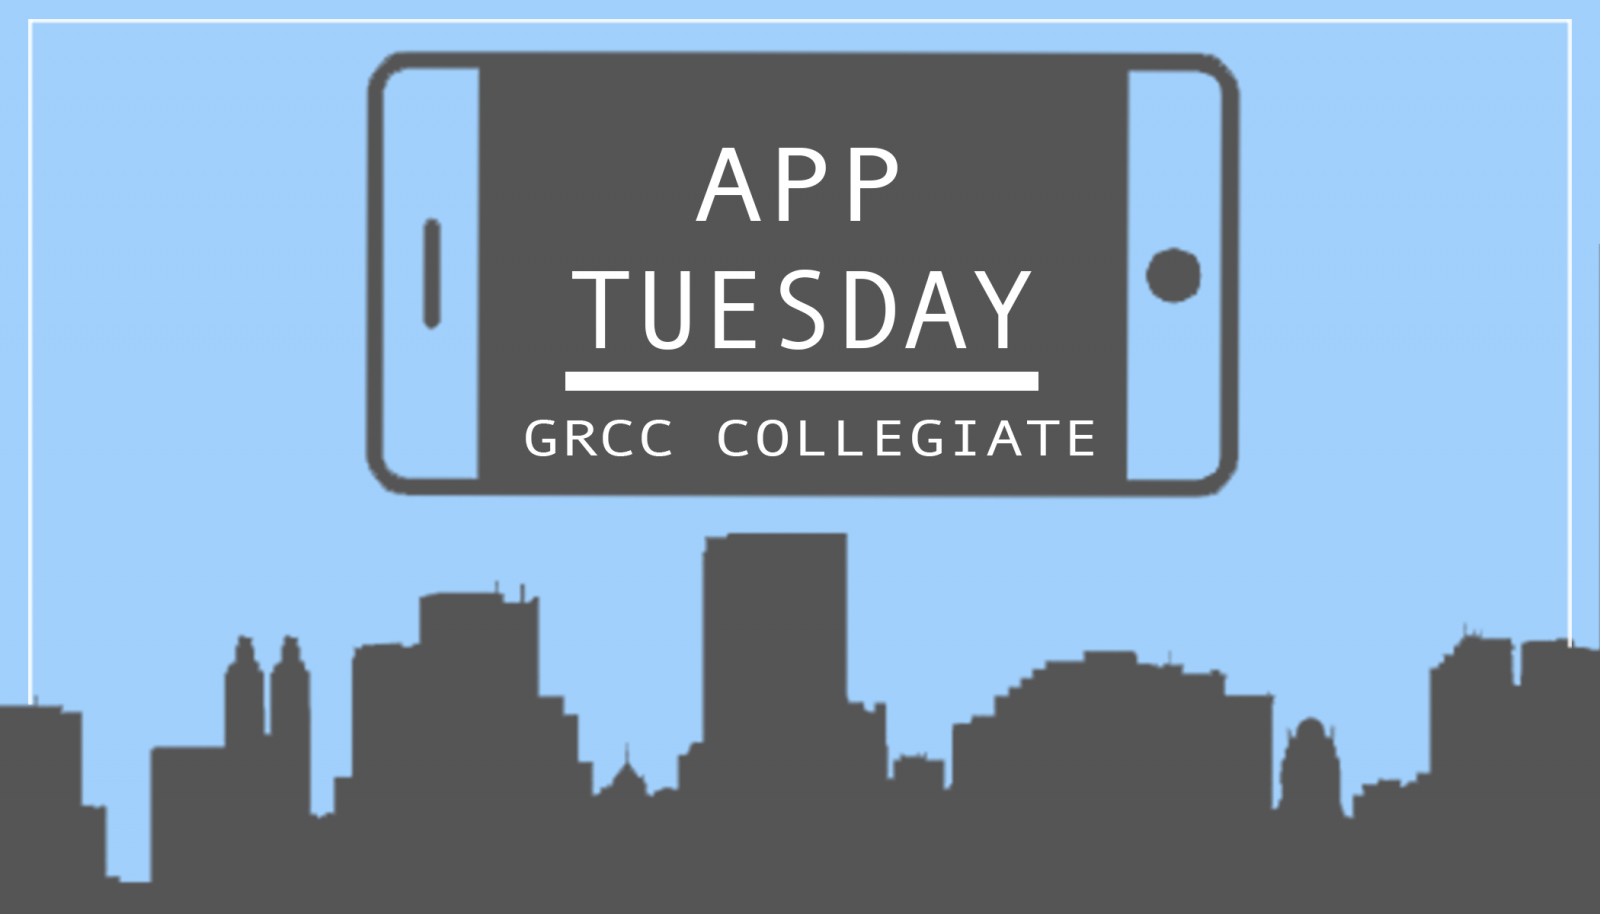 App Tuesday - Welcome the new semester with these apps - The ... 48f5690519d56